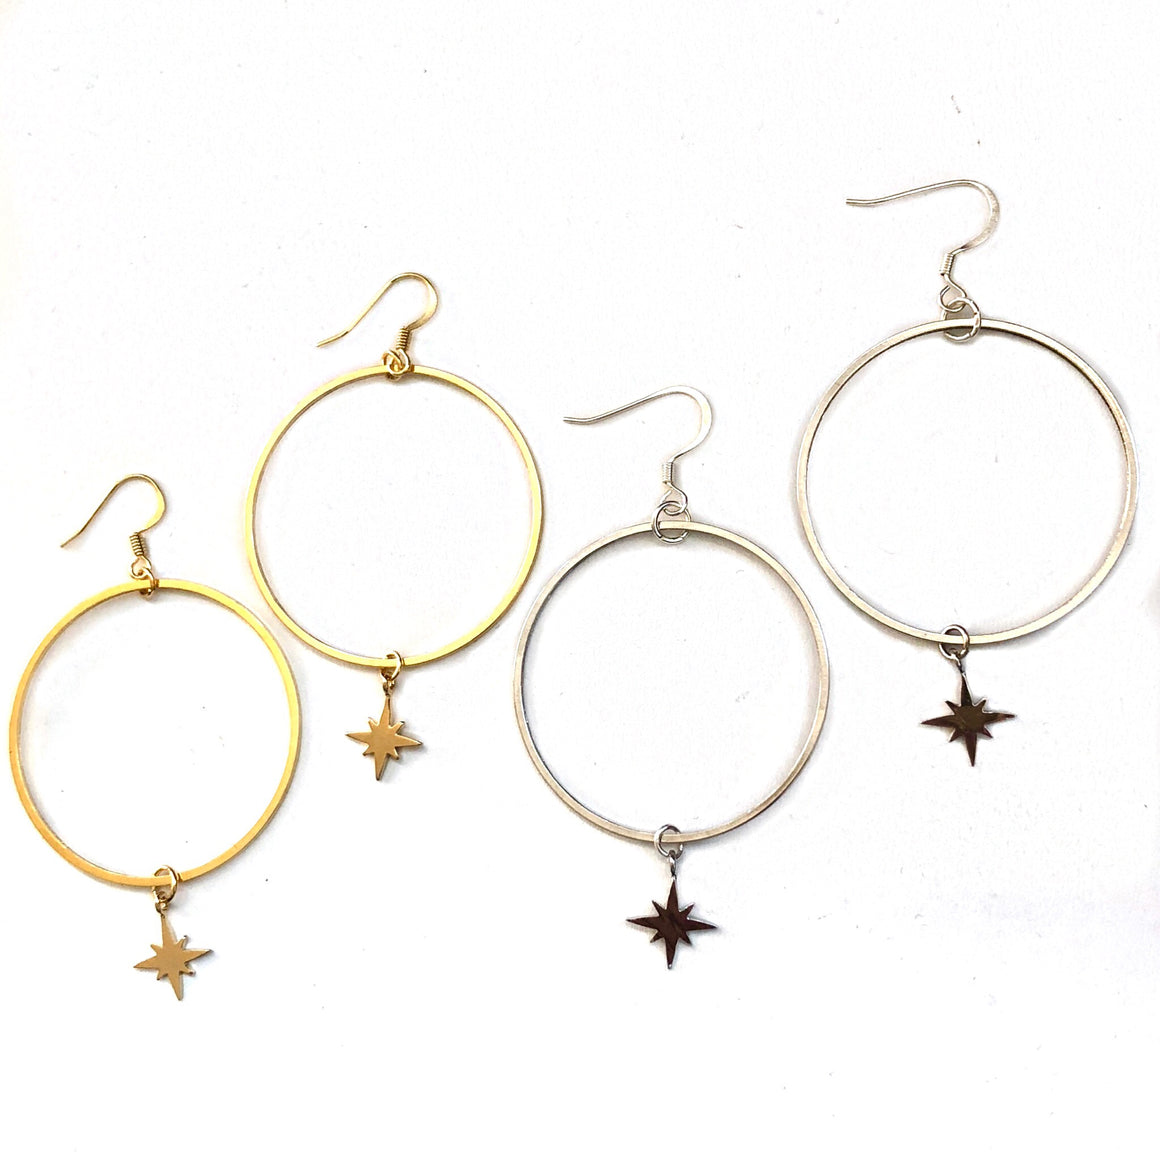 classic hoop earrings with star charm hanging